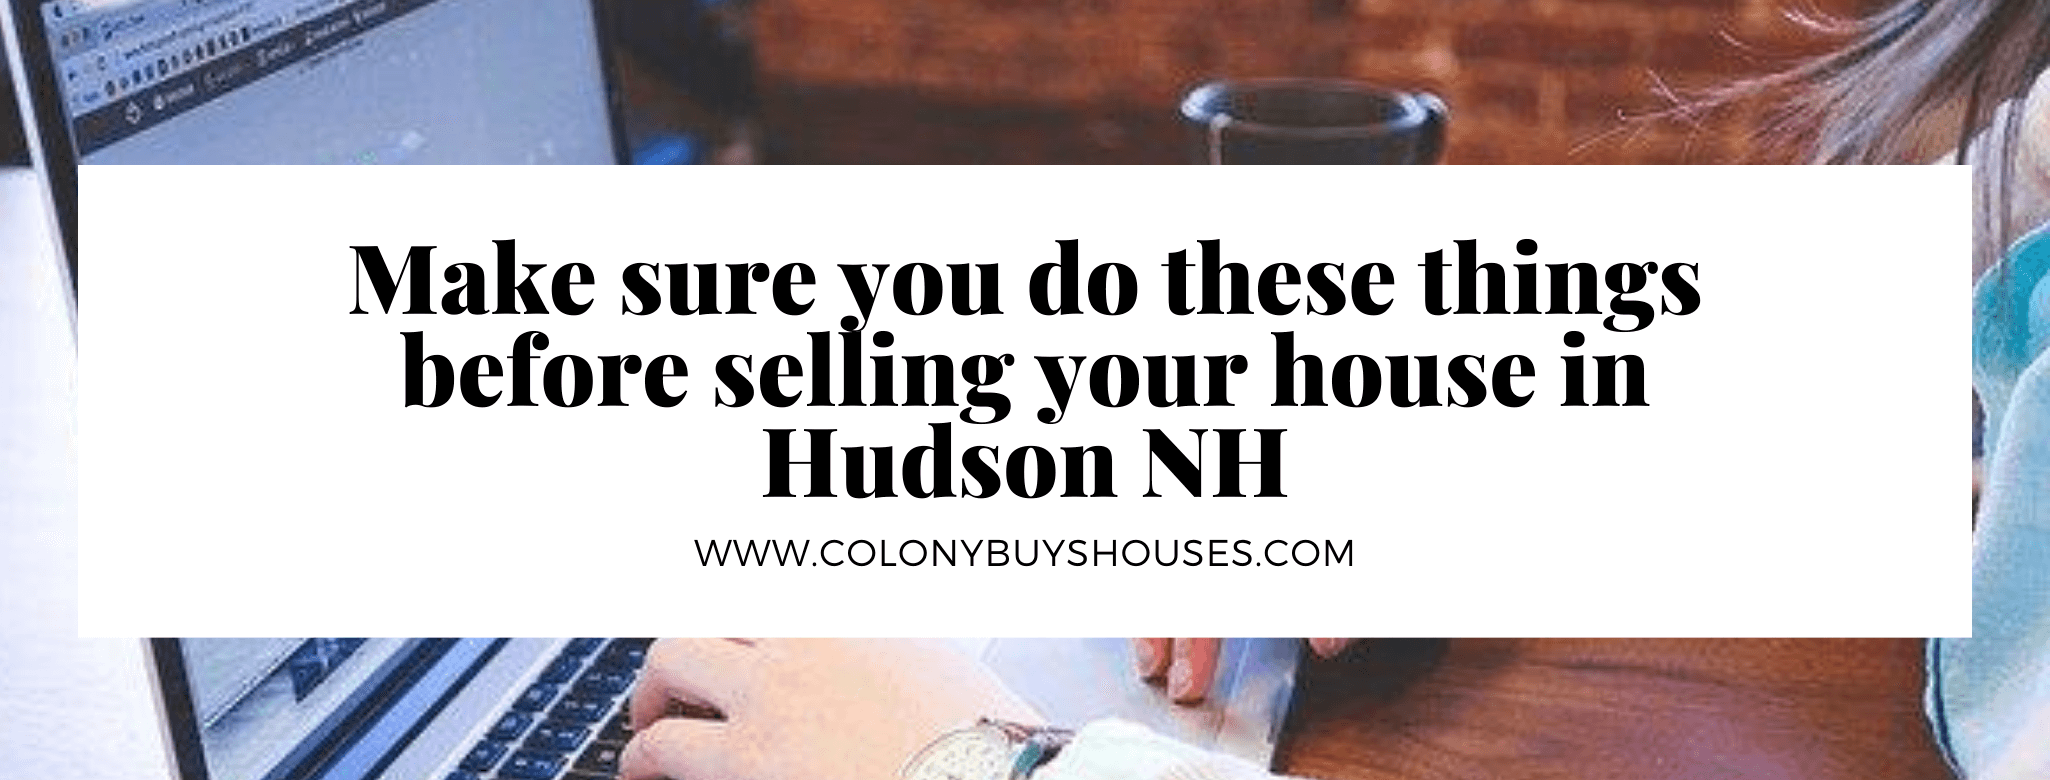 Hudson NH house buyers